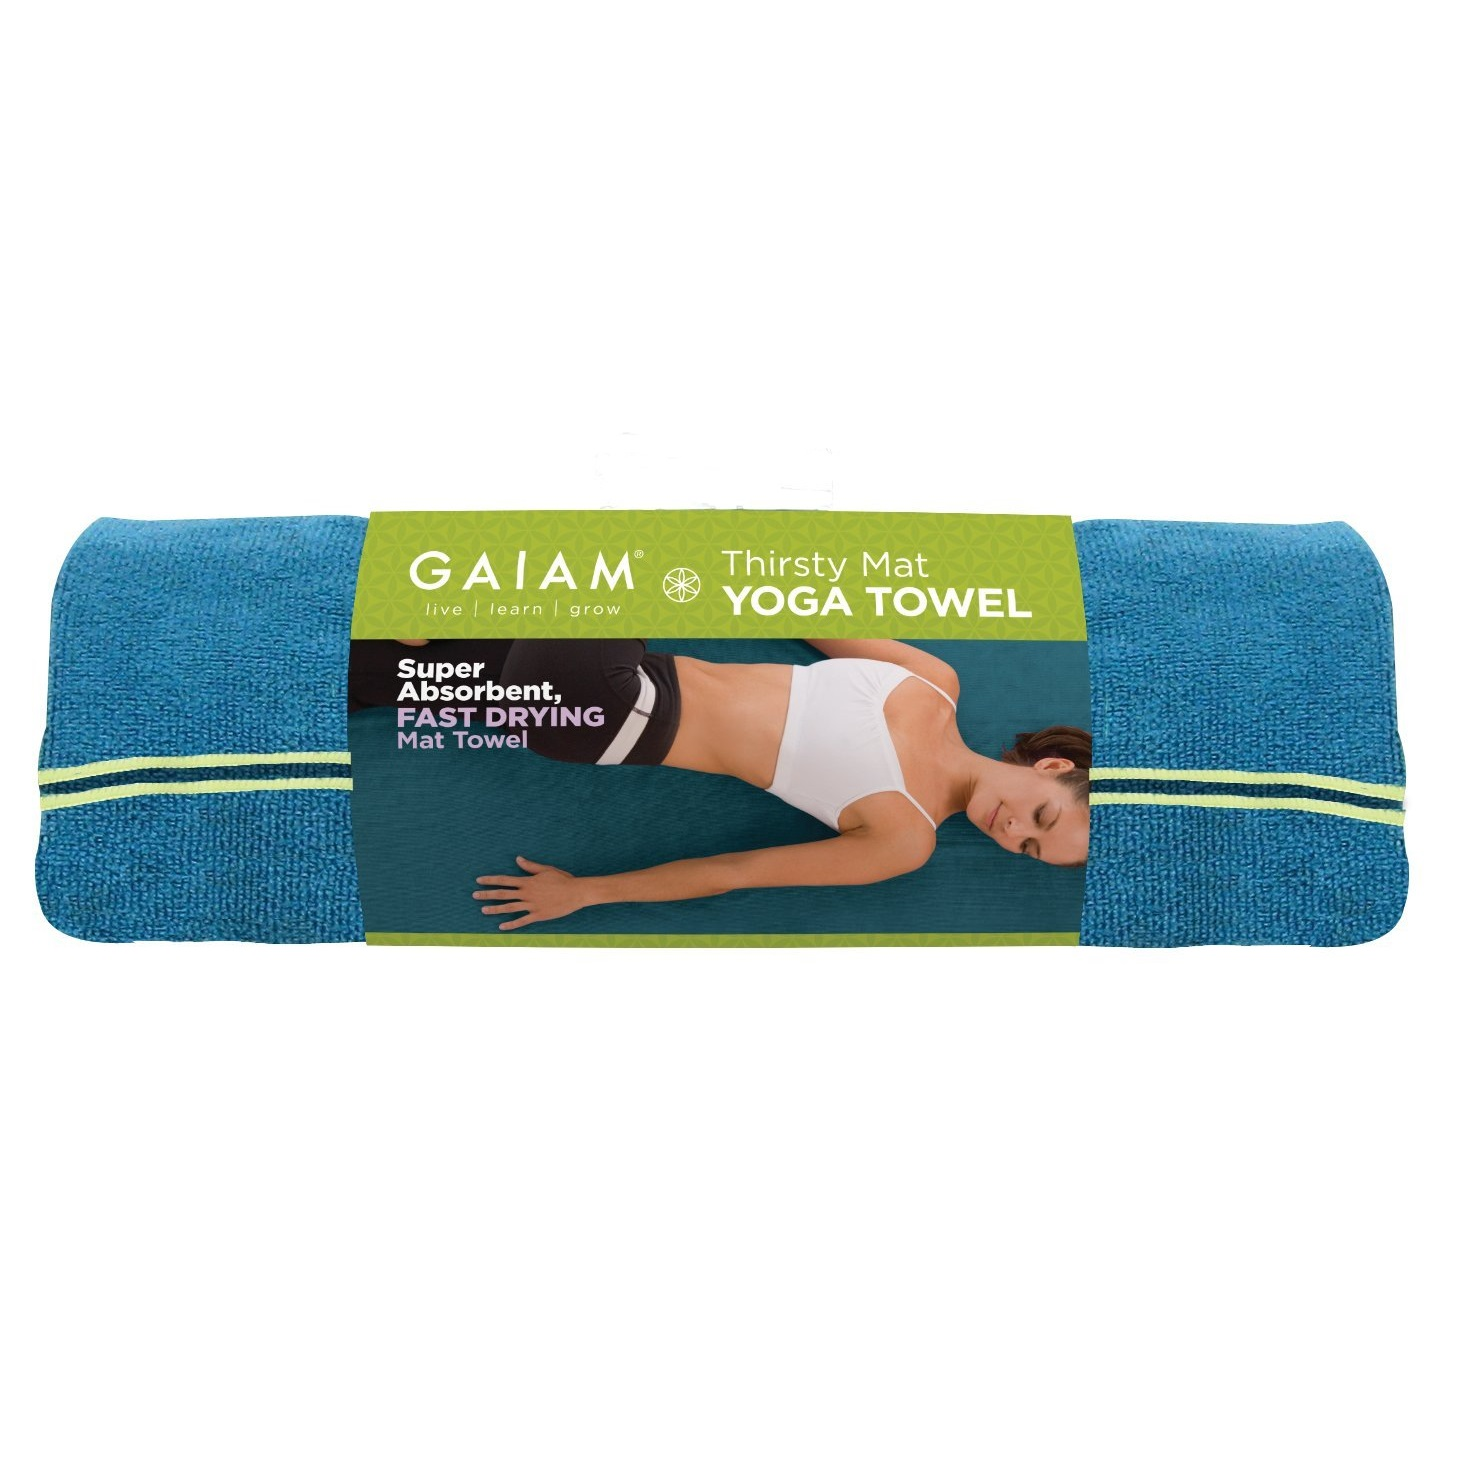 green gaiam stay mat towel ca trim of picture with purple put yoga